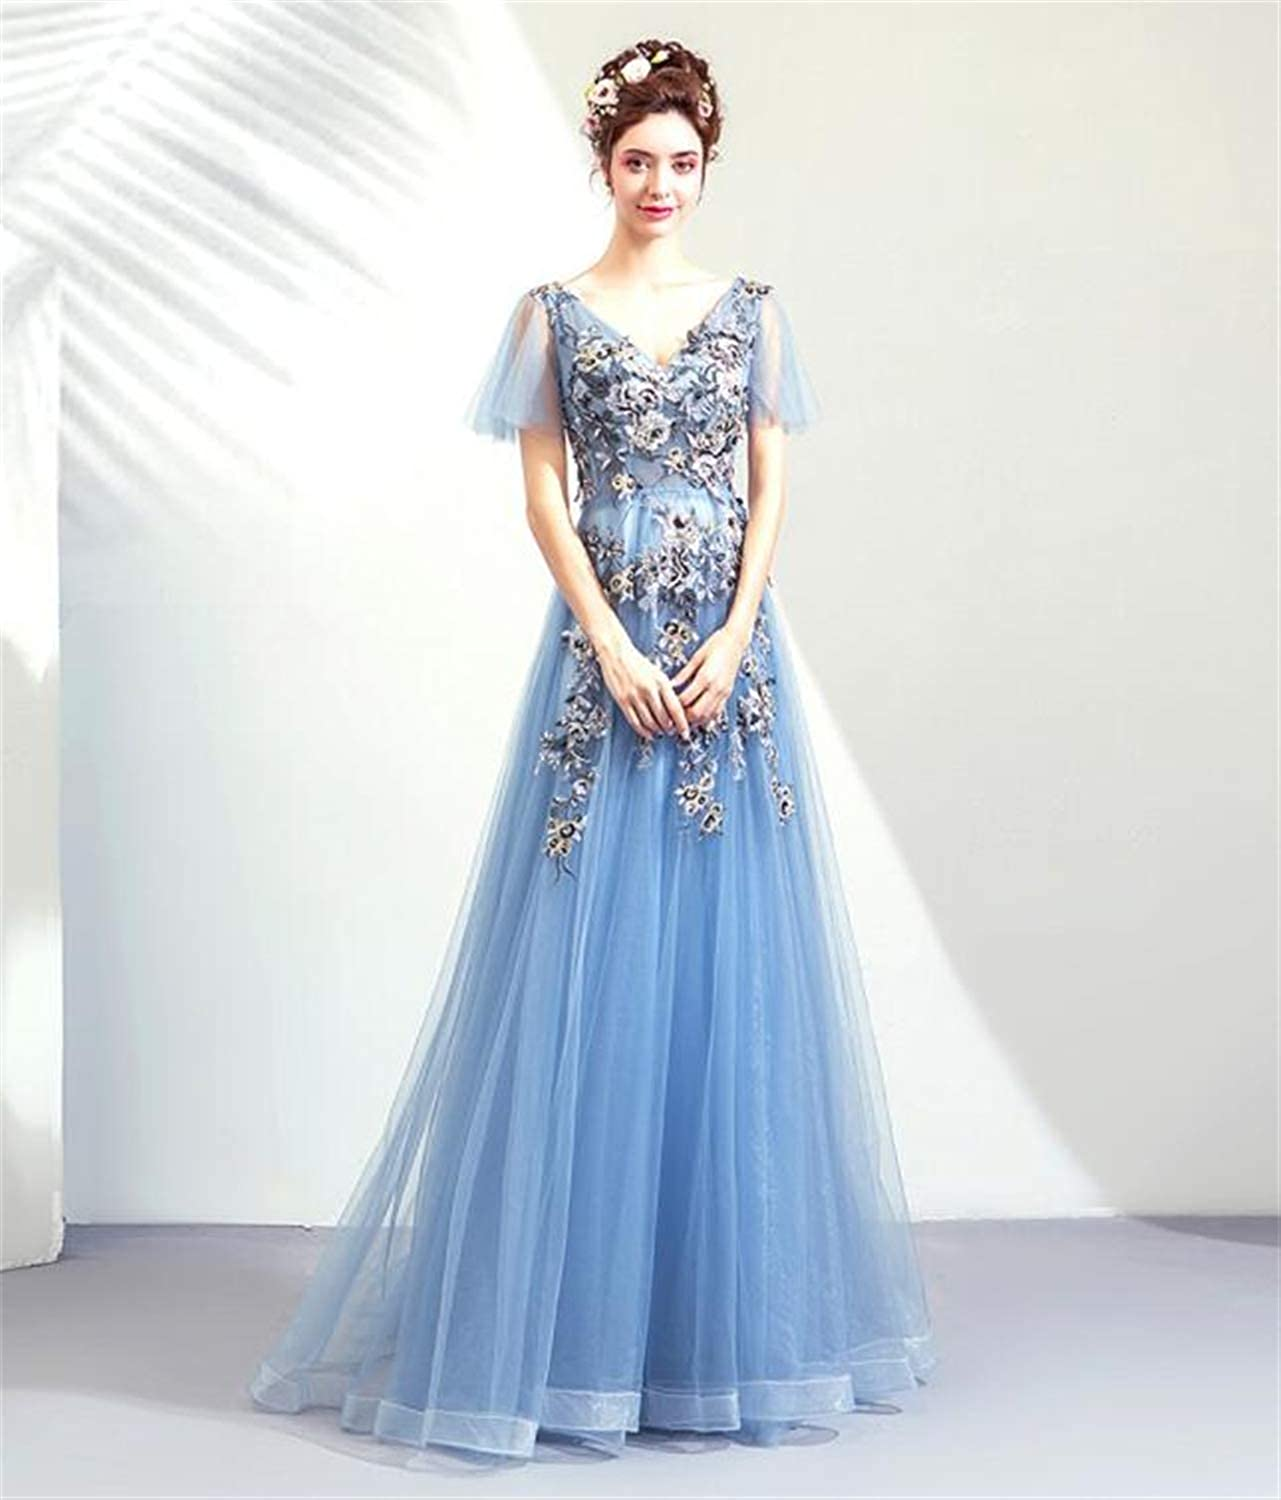 Beautiful Bride Wedding bluee Flowers Lace Tulle Embroidered, Dinner Show Host Dress Dress